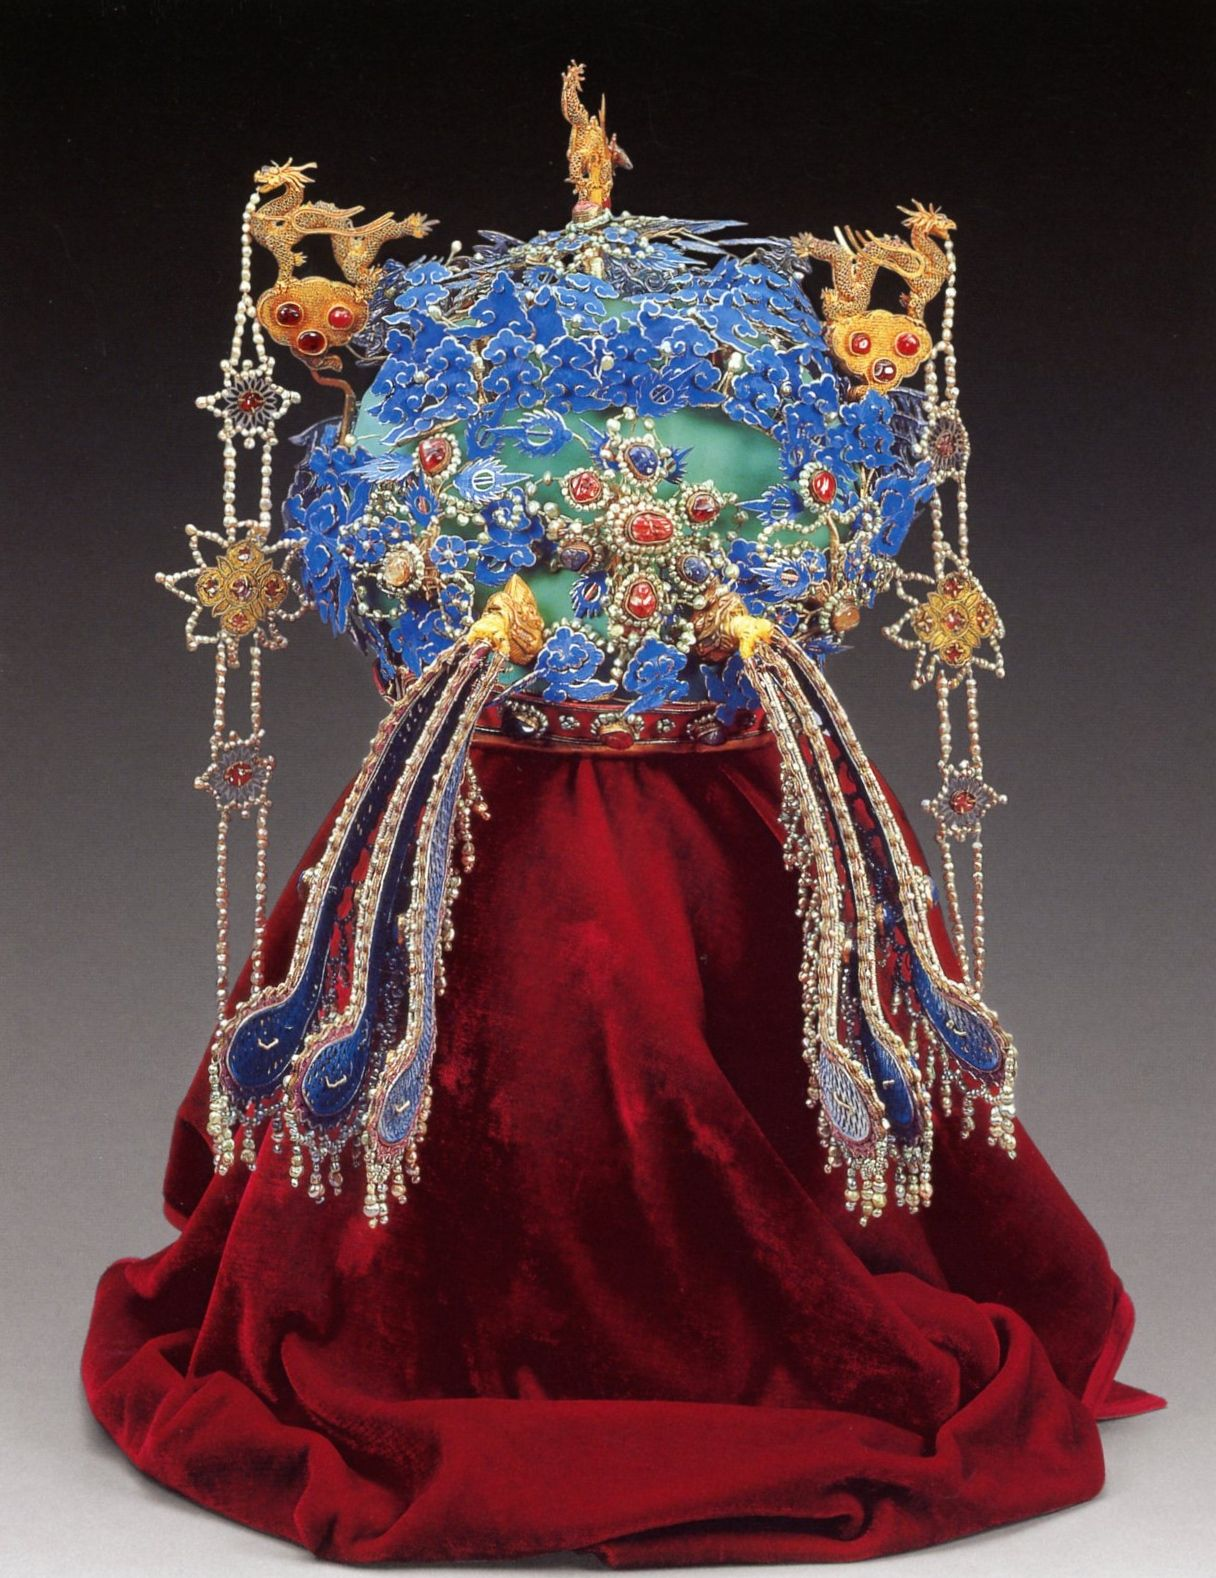 Back side view of the bejeweled 'Phoenix' coronet of Empress Xiaoduanxian (1565 – April 1620), personal name Wang Xijie, a native of Yuyao (modern-day Yuyao, Zhejiang), who was a Ming Dynasty empress of the Wanli Emperor (reigned 19 Jul 1572 – 18 Aug 1620).  Empress Xiaoduanxian is the longest serving empress consort in China. She was the only one of the consorts of Wanli to hold the title of empress during his reign. Her only daughter was Princess Rongchang.